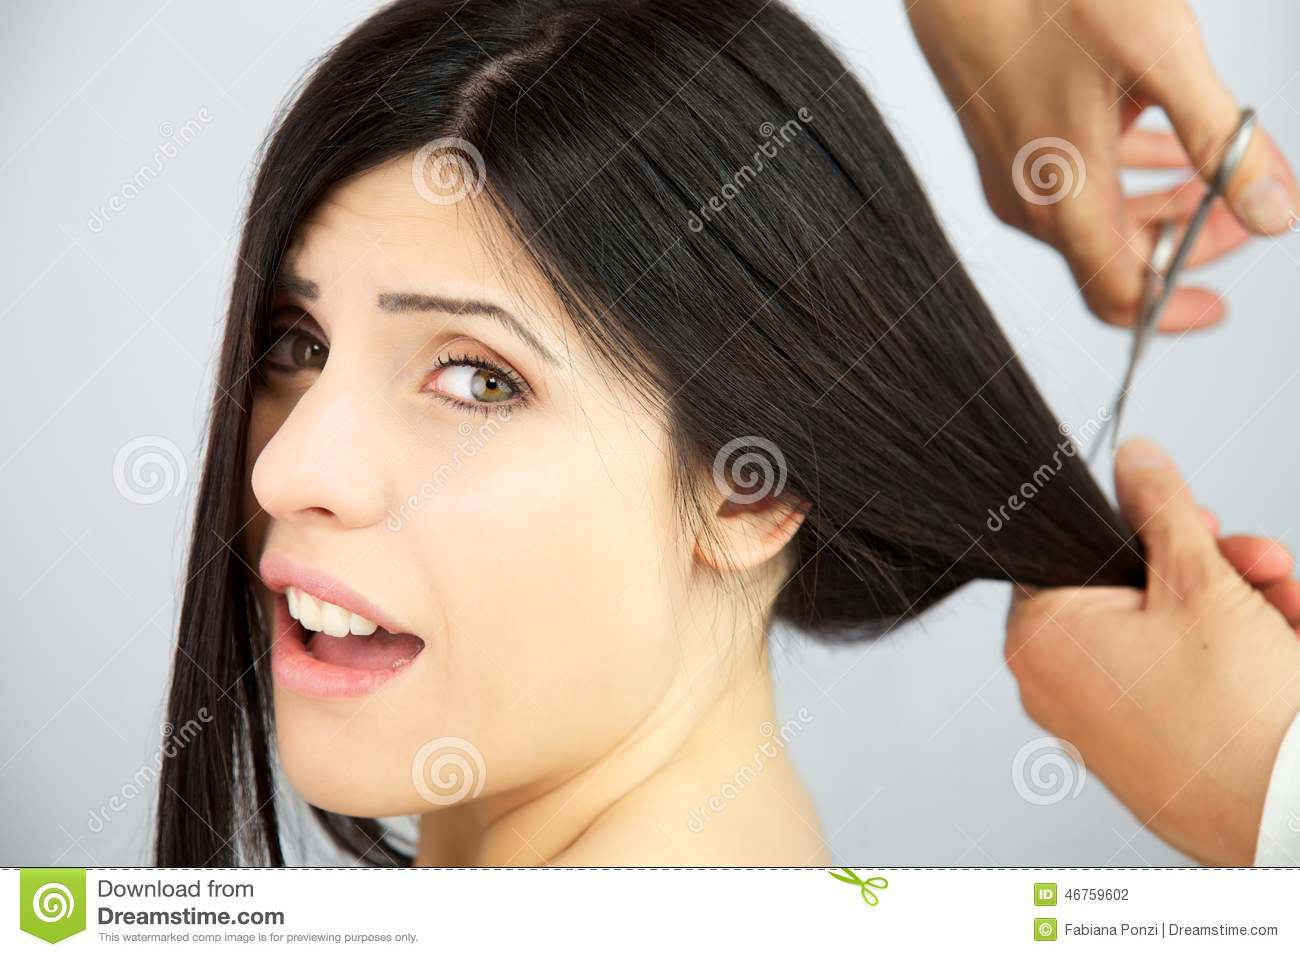 Woman Surprised About Getting Long Hair Cut Stock Photo Image Of Studio Short 46759602